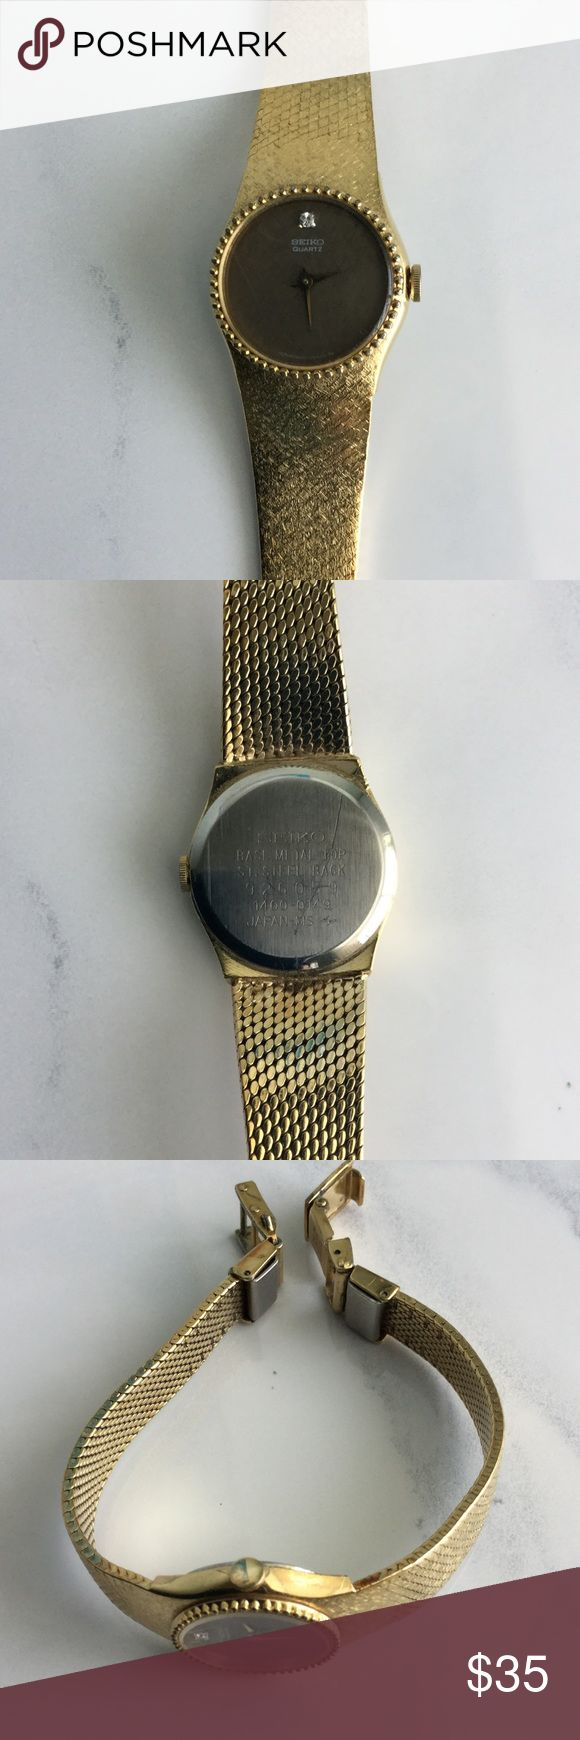 Gold Seiko Women's Watch Vintage Seiko Gold Watch with a diamond at 12 on gold face.  Still works, but needs a new battery.  Purchased in the Bahamas 35 years ago.  Good condition, but some wear near clasp. Seiko Accessories Watches